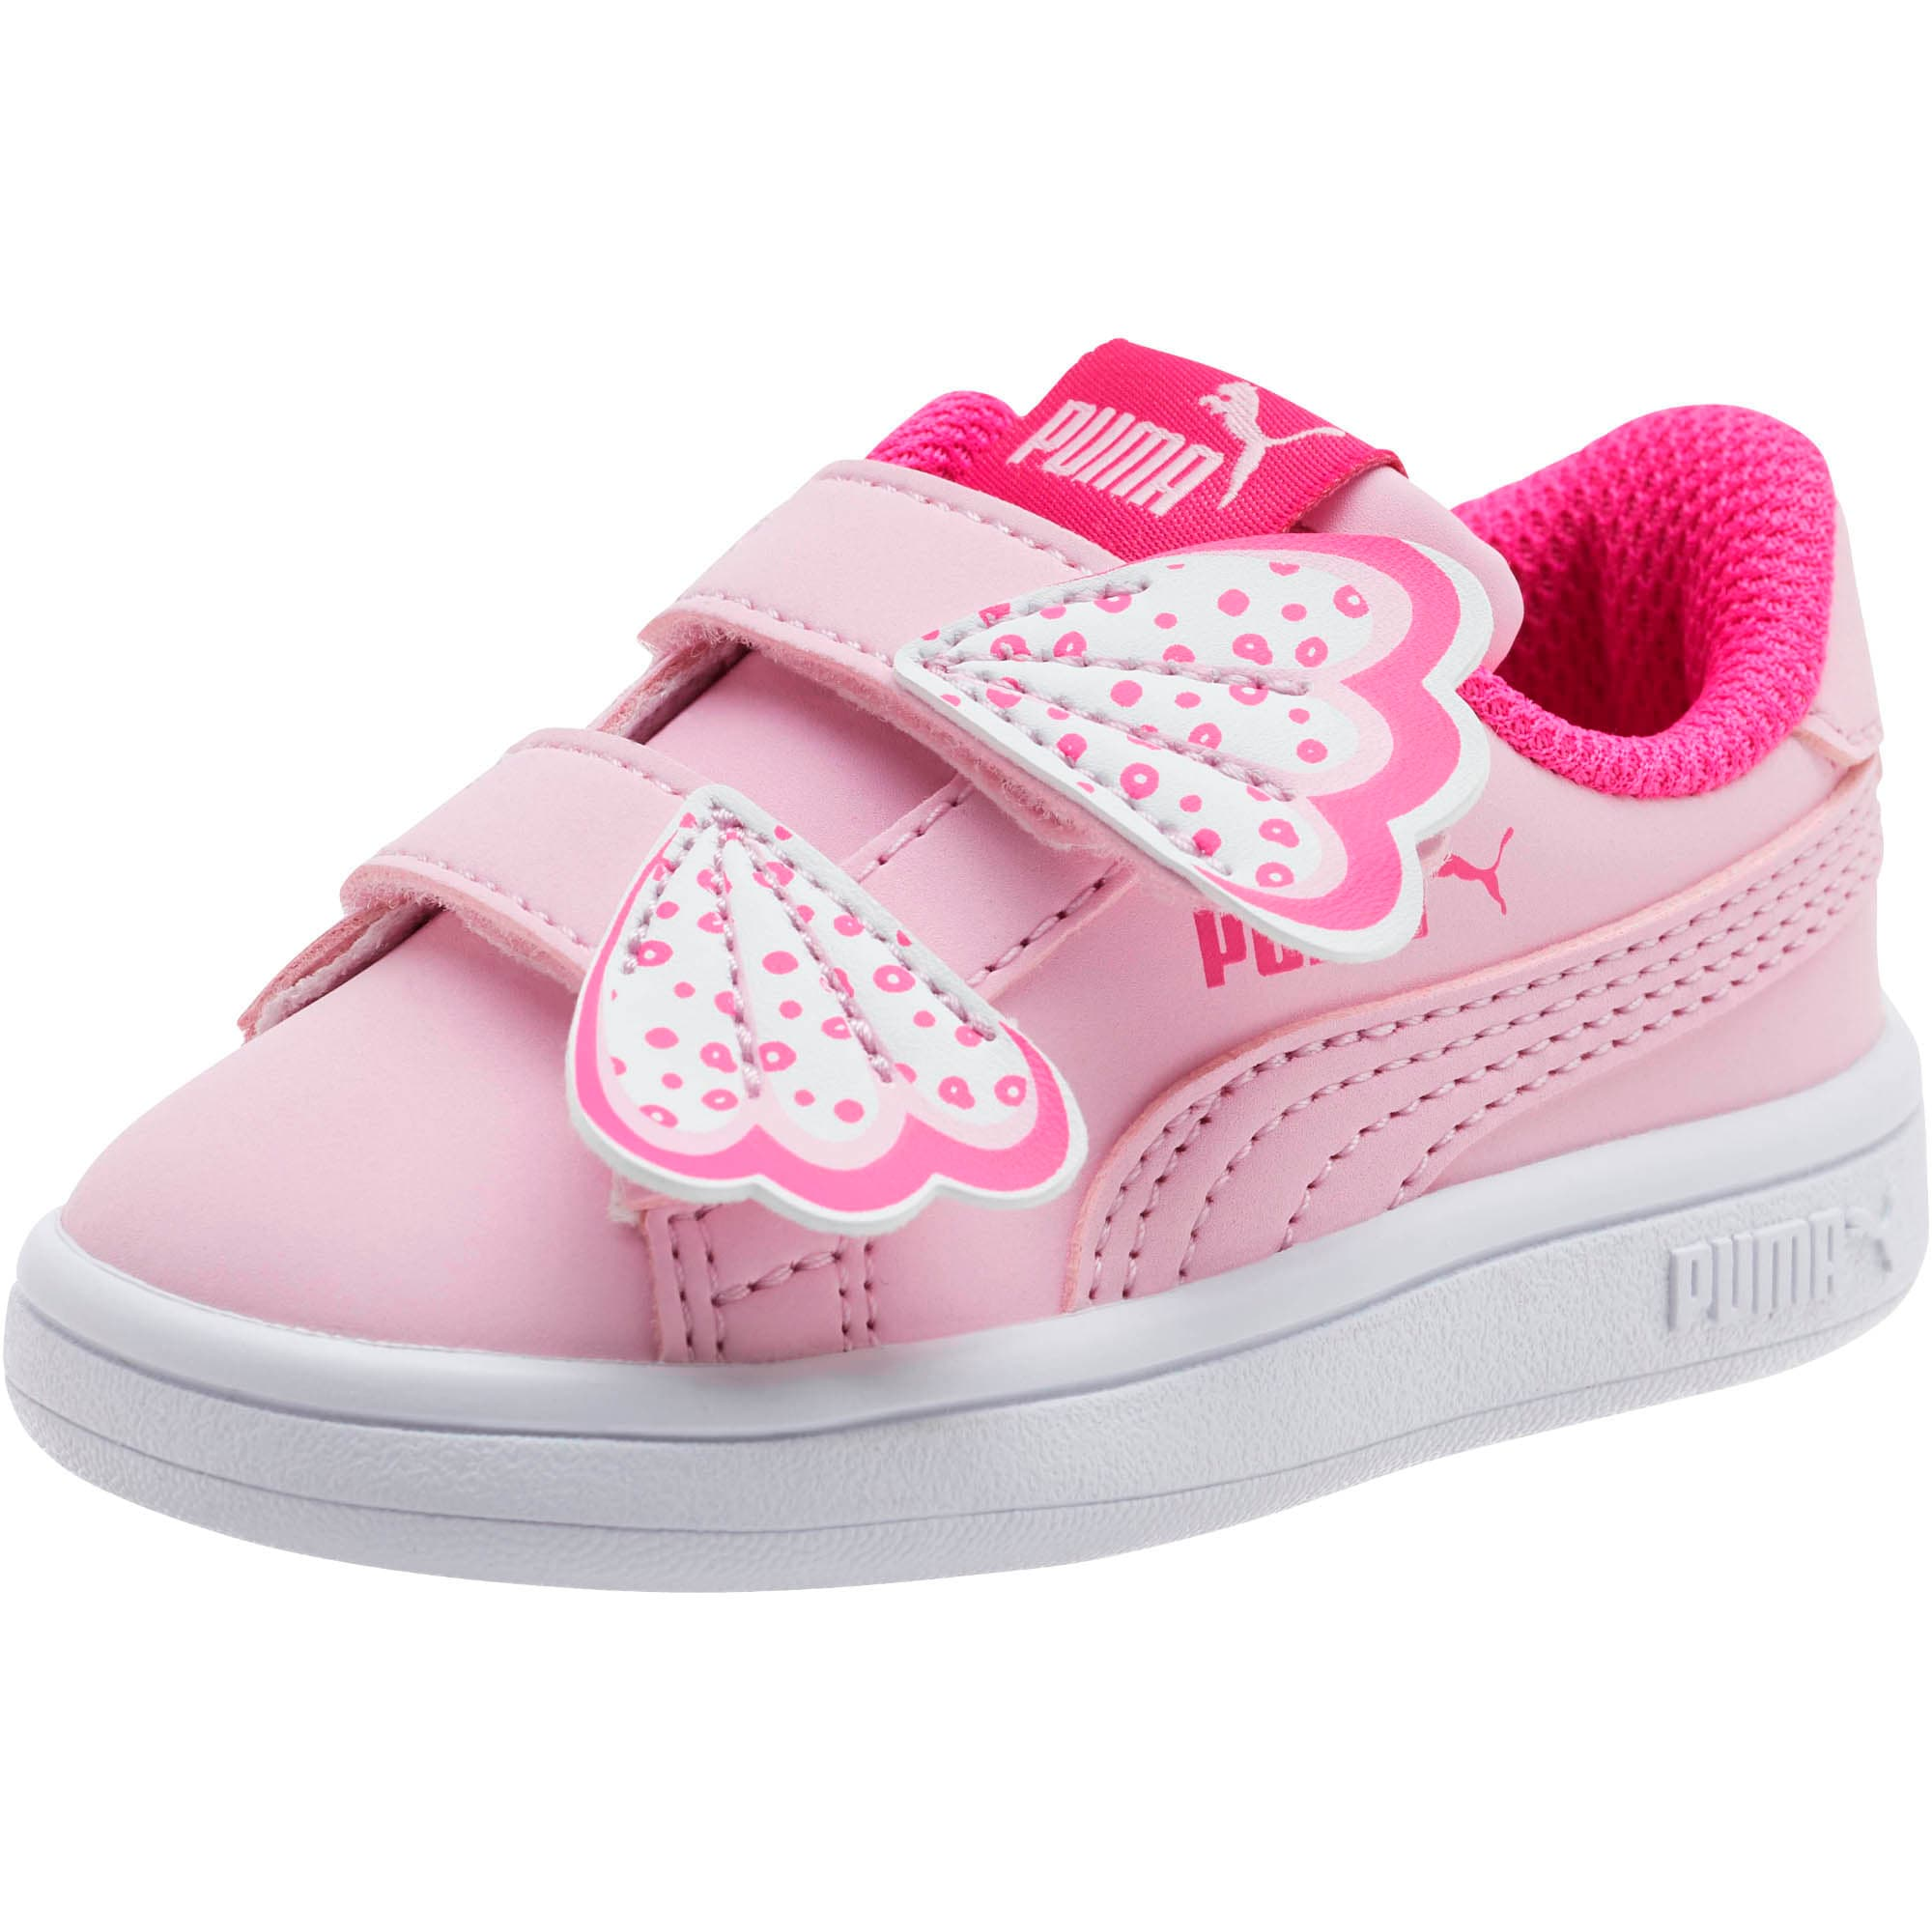 Thumbnail 1 of PUMA Smash v2 Butterfly AC Toddler Shoes, Pale Pink-F Purple-White, medium